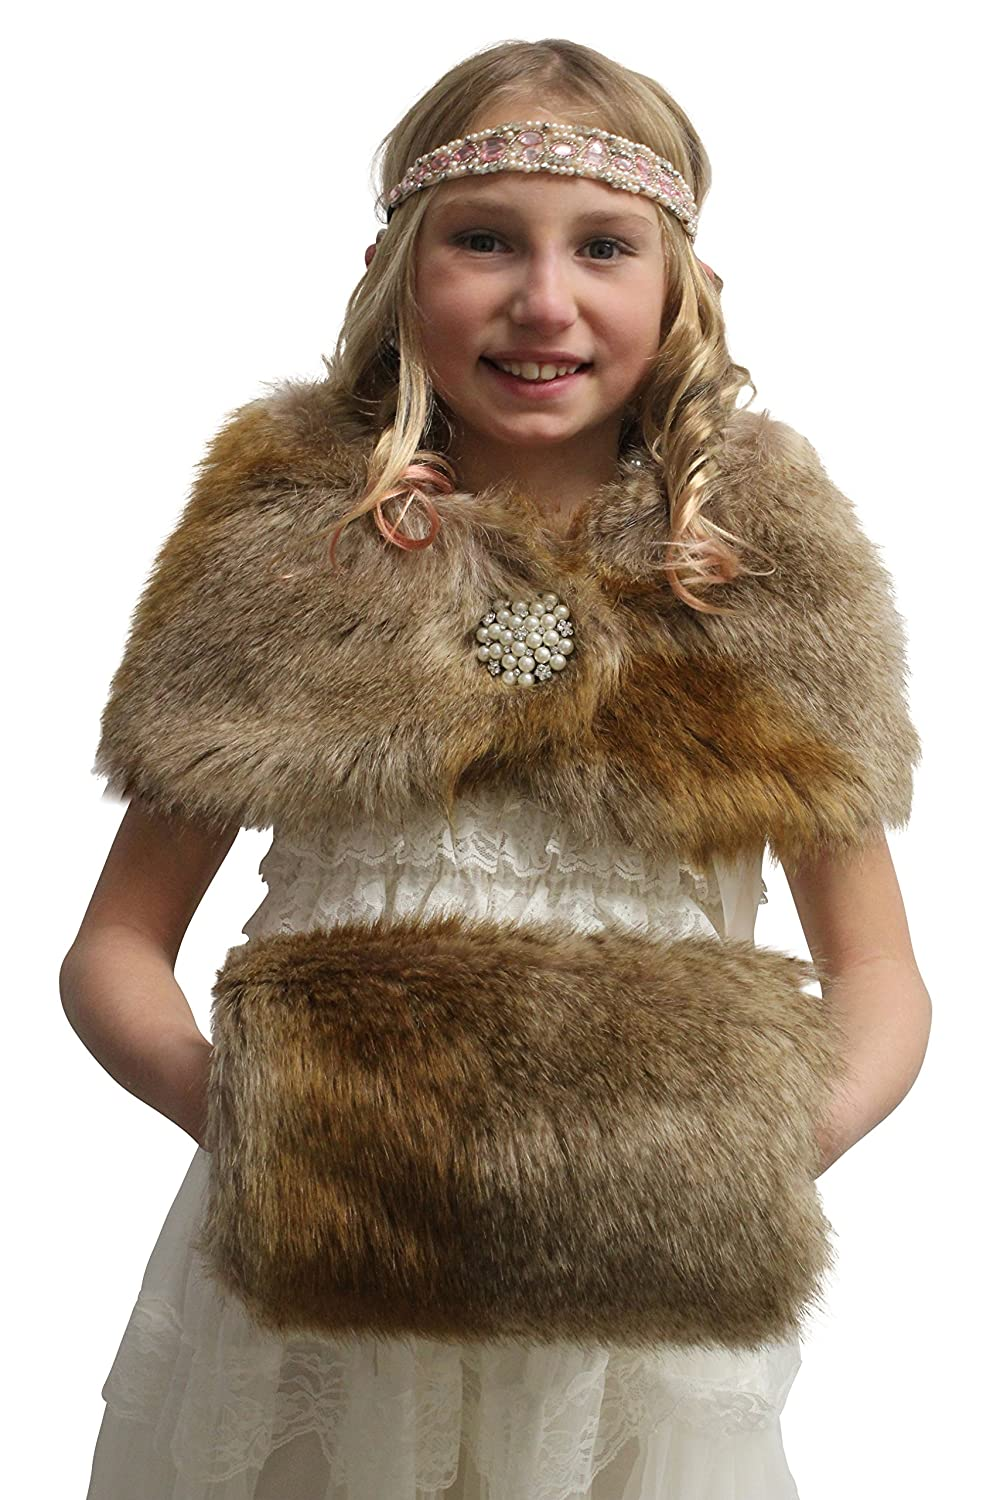 Vintage Style Children's Clothing: Girls, Boys, Baby, Toddler Bridal Faux fur muff Girls Faux Fur Hand Muffs $11.99 AT vintagedancer.com